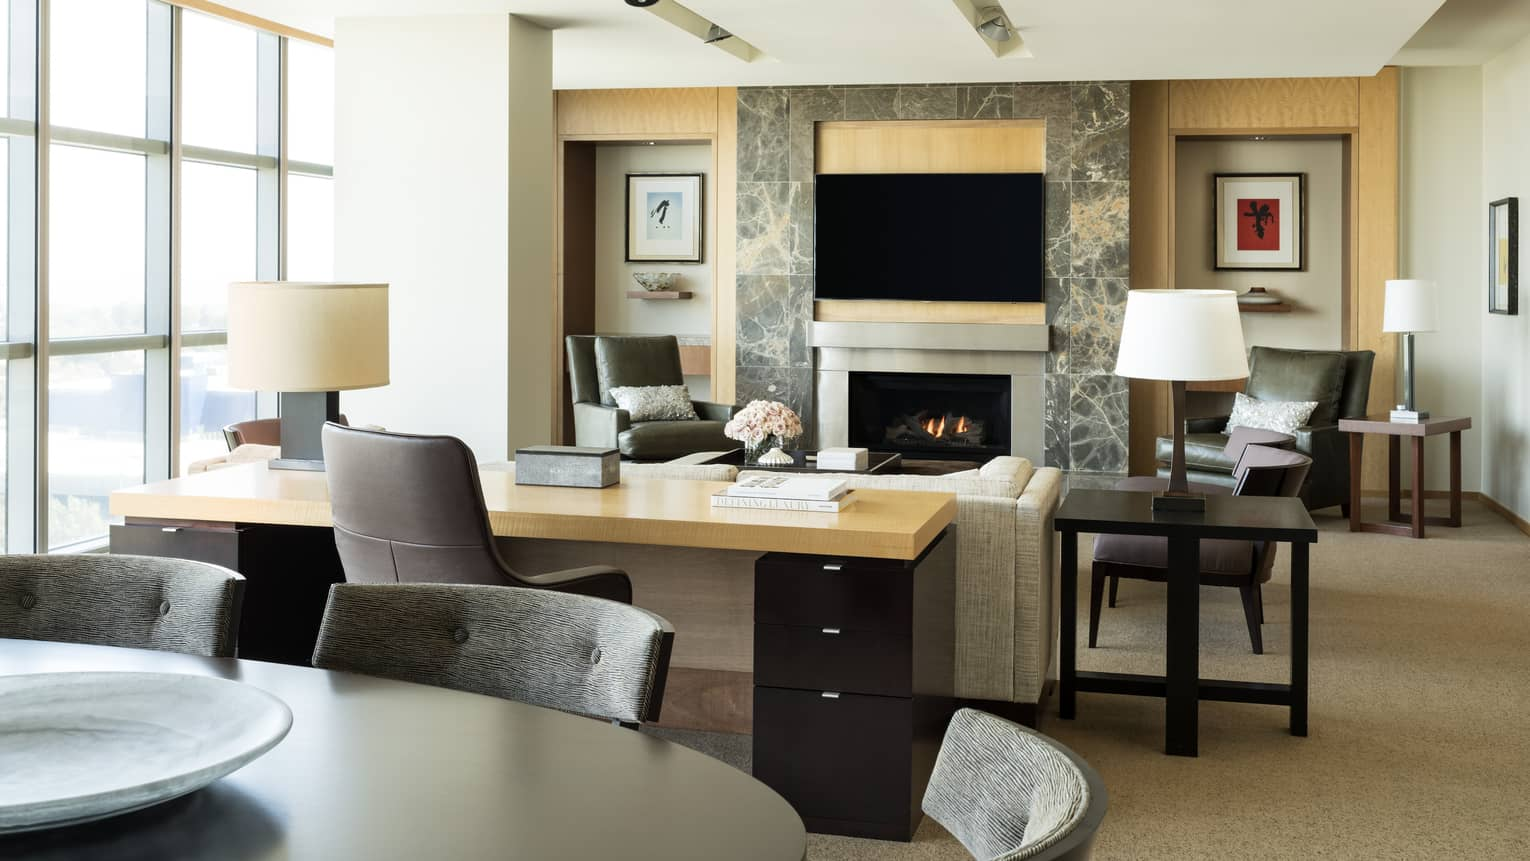 Console table, sofa by modern stone fireplace, TV screen on mantle